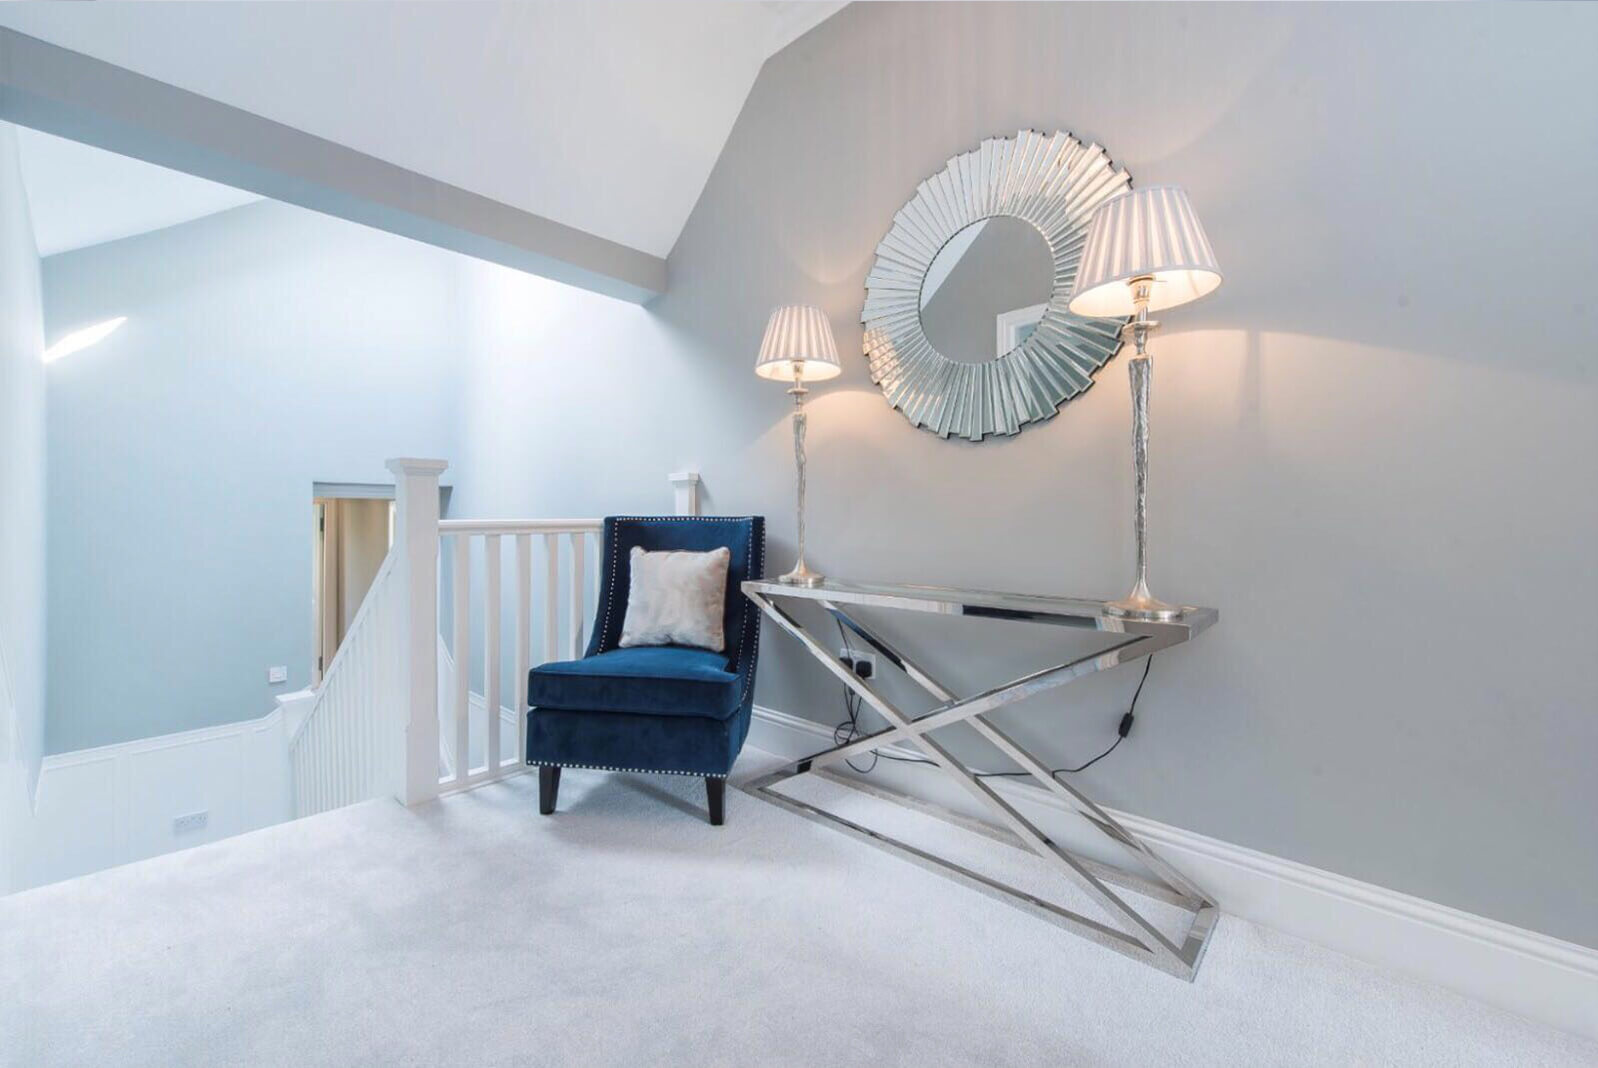 Large open area at top of stairs furnished with fabric chair and console table, mirror and lamps